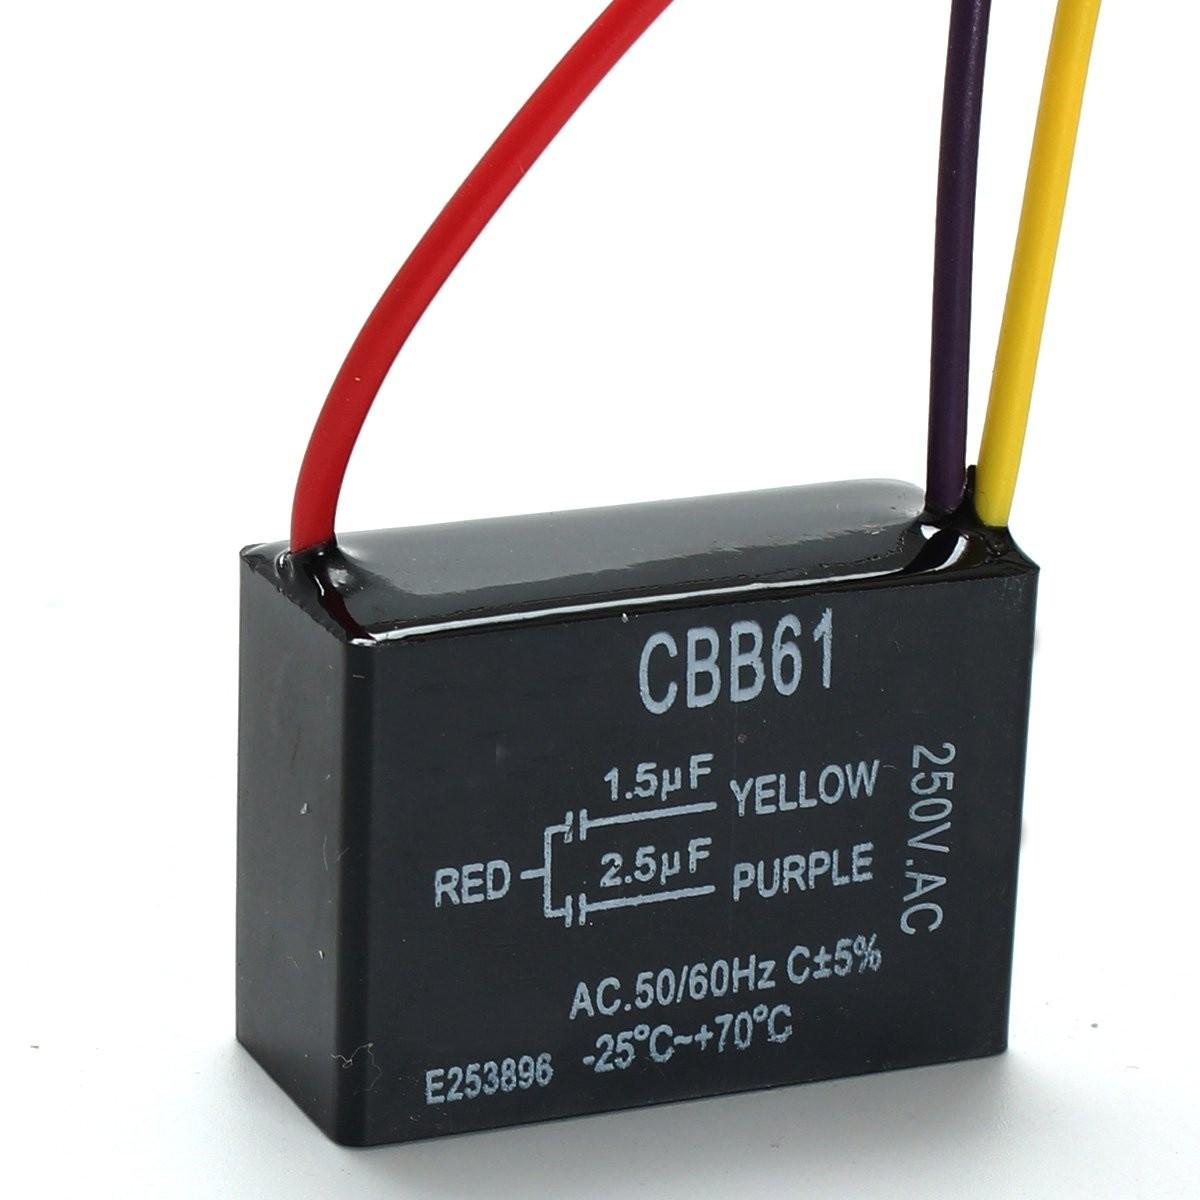 Groovy Cbb61 1 5Uf 2 5Uf 3 Wire 250Vac Ceiling Fan Capacitor 3 Wires Sale Wiring Digital Resources Bemuashebarightsorg